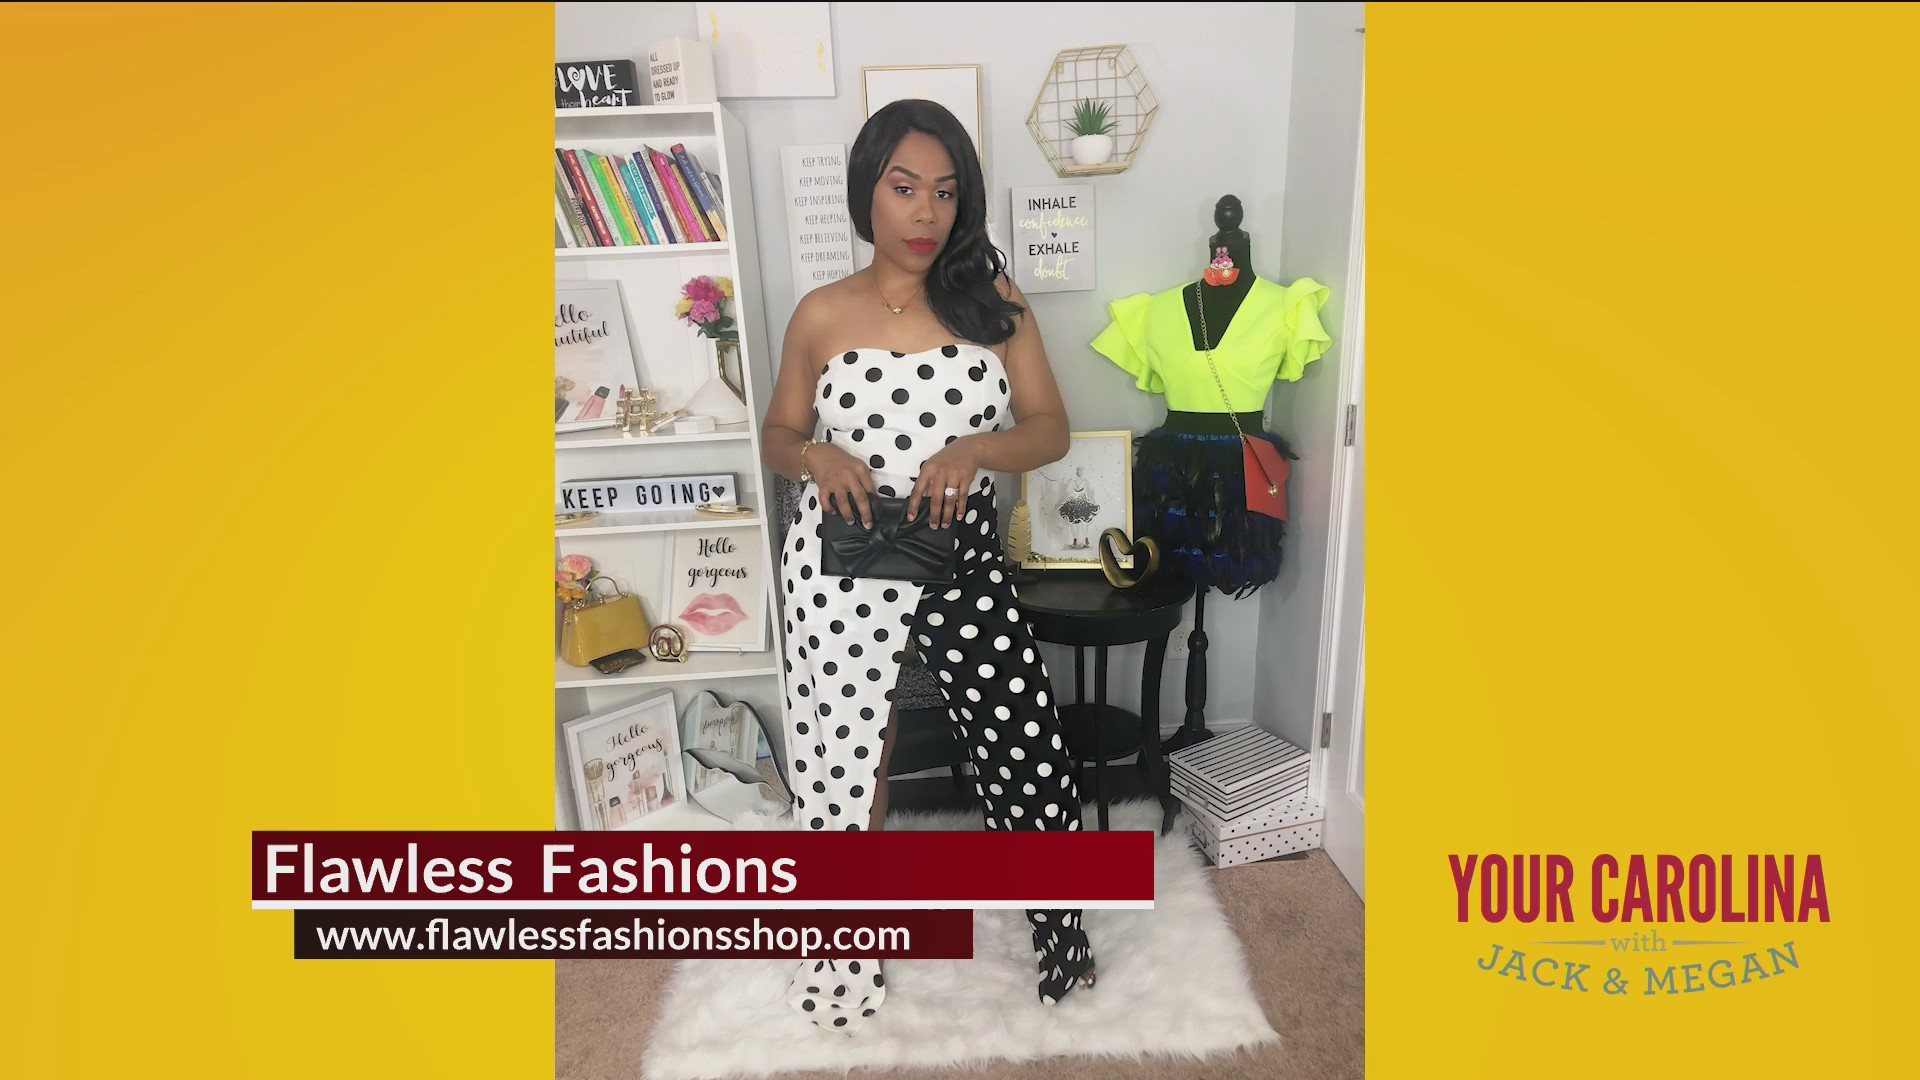 Fashion Trend Tuesday - Flawless Fashions